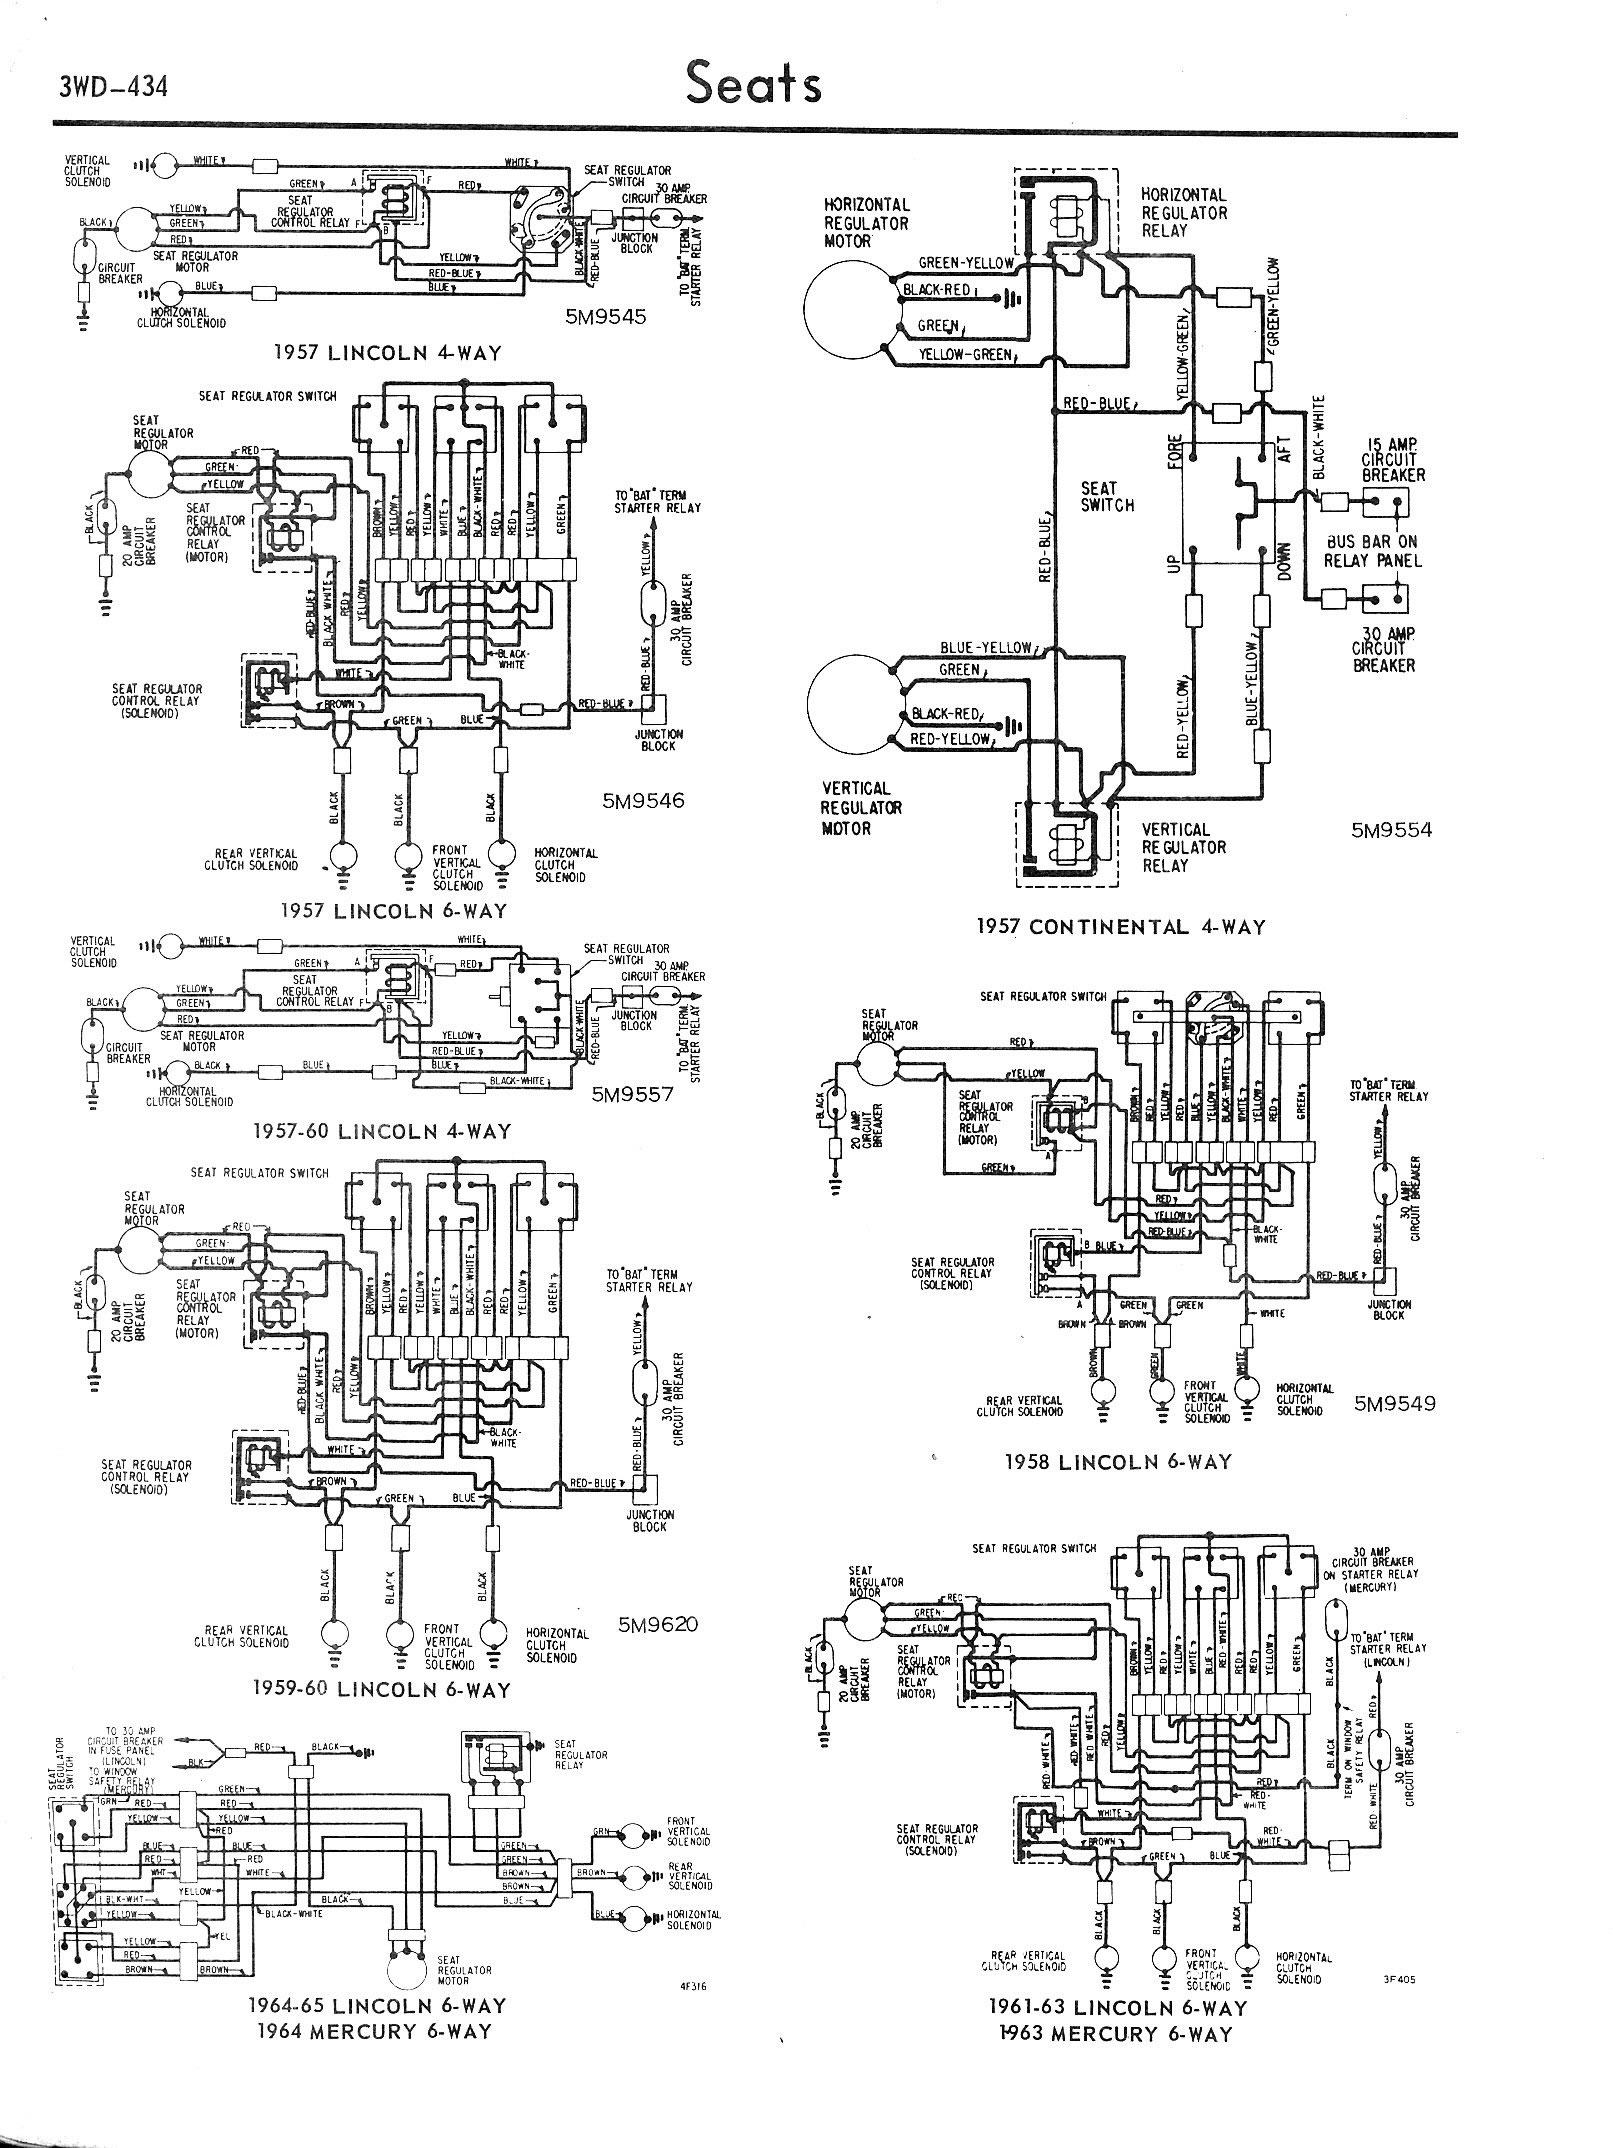 1964 1 2 Ford Mustang Wiring Diagrams 57 65 Lincoln 4 Way 6 Continental 63 64 Mercury